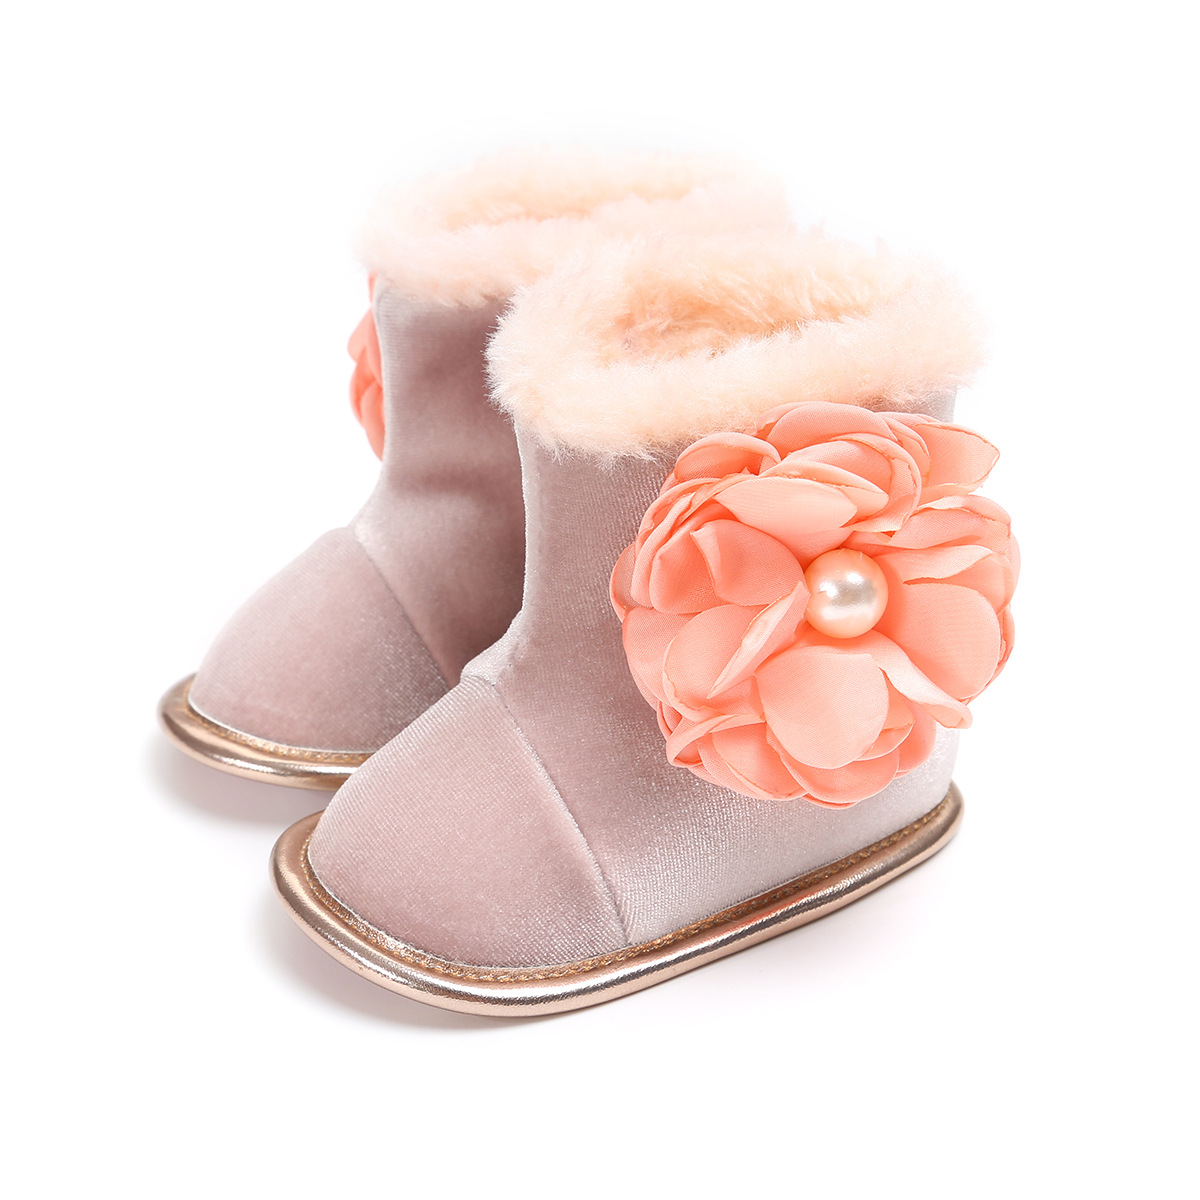 Romirus Baby Girls Winter Snow Boots Cute Flower Infant Bebe Fashion Boots First Walkers